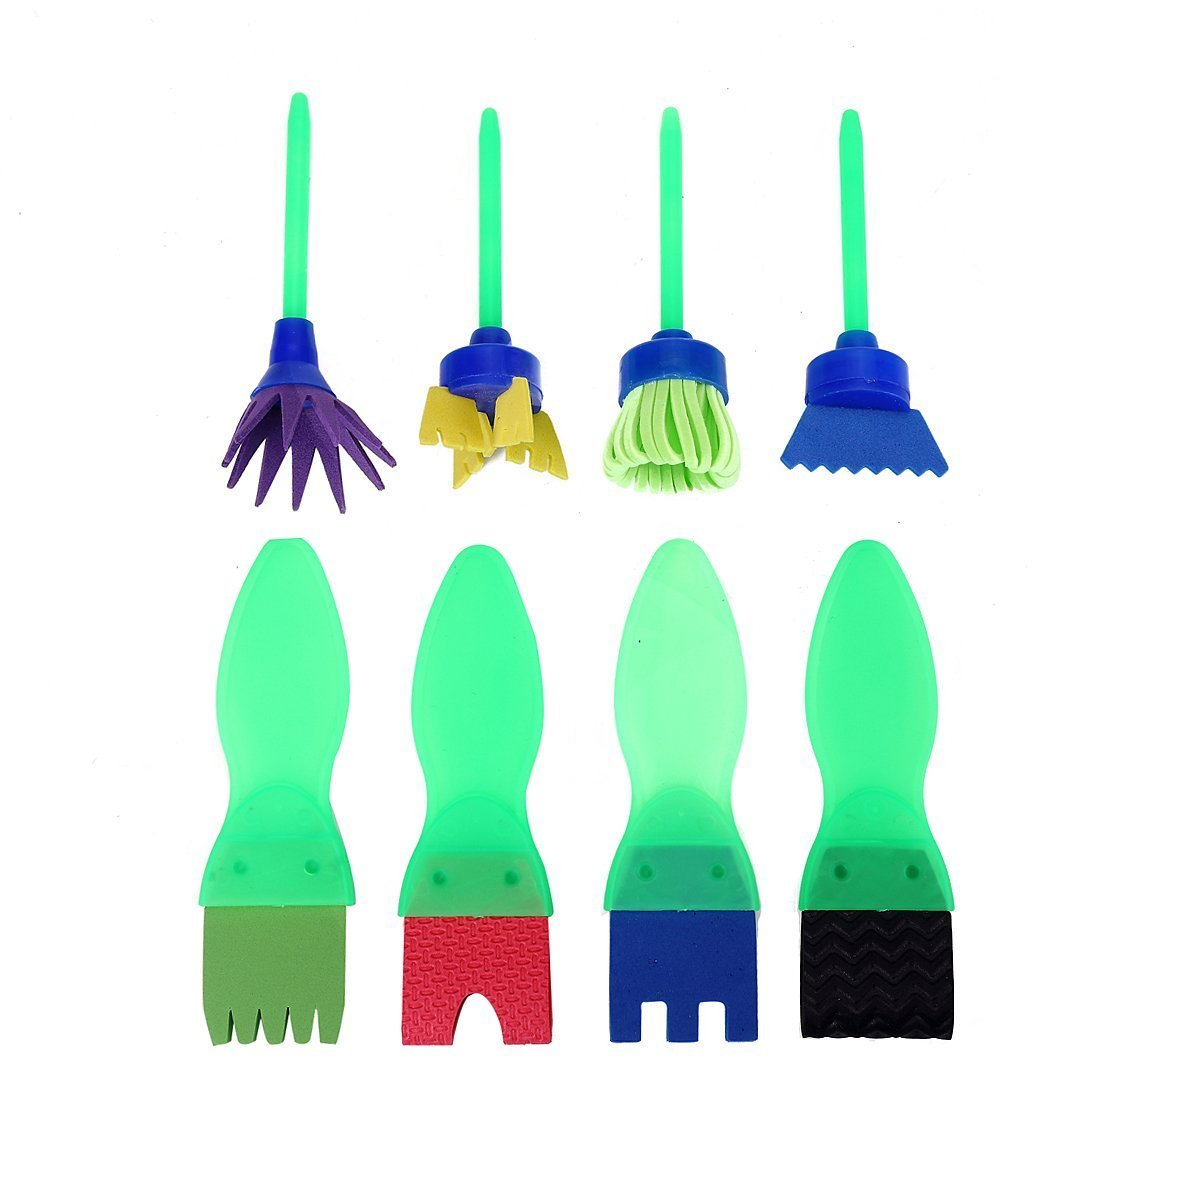 9 green textured paint brushes